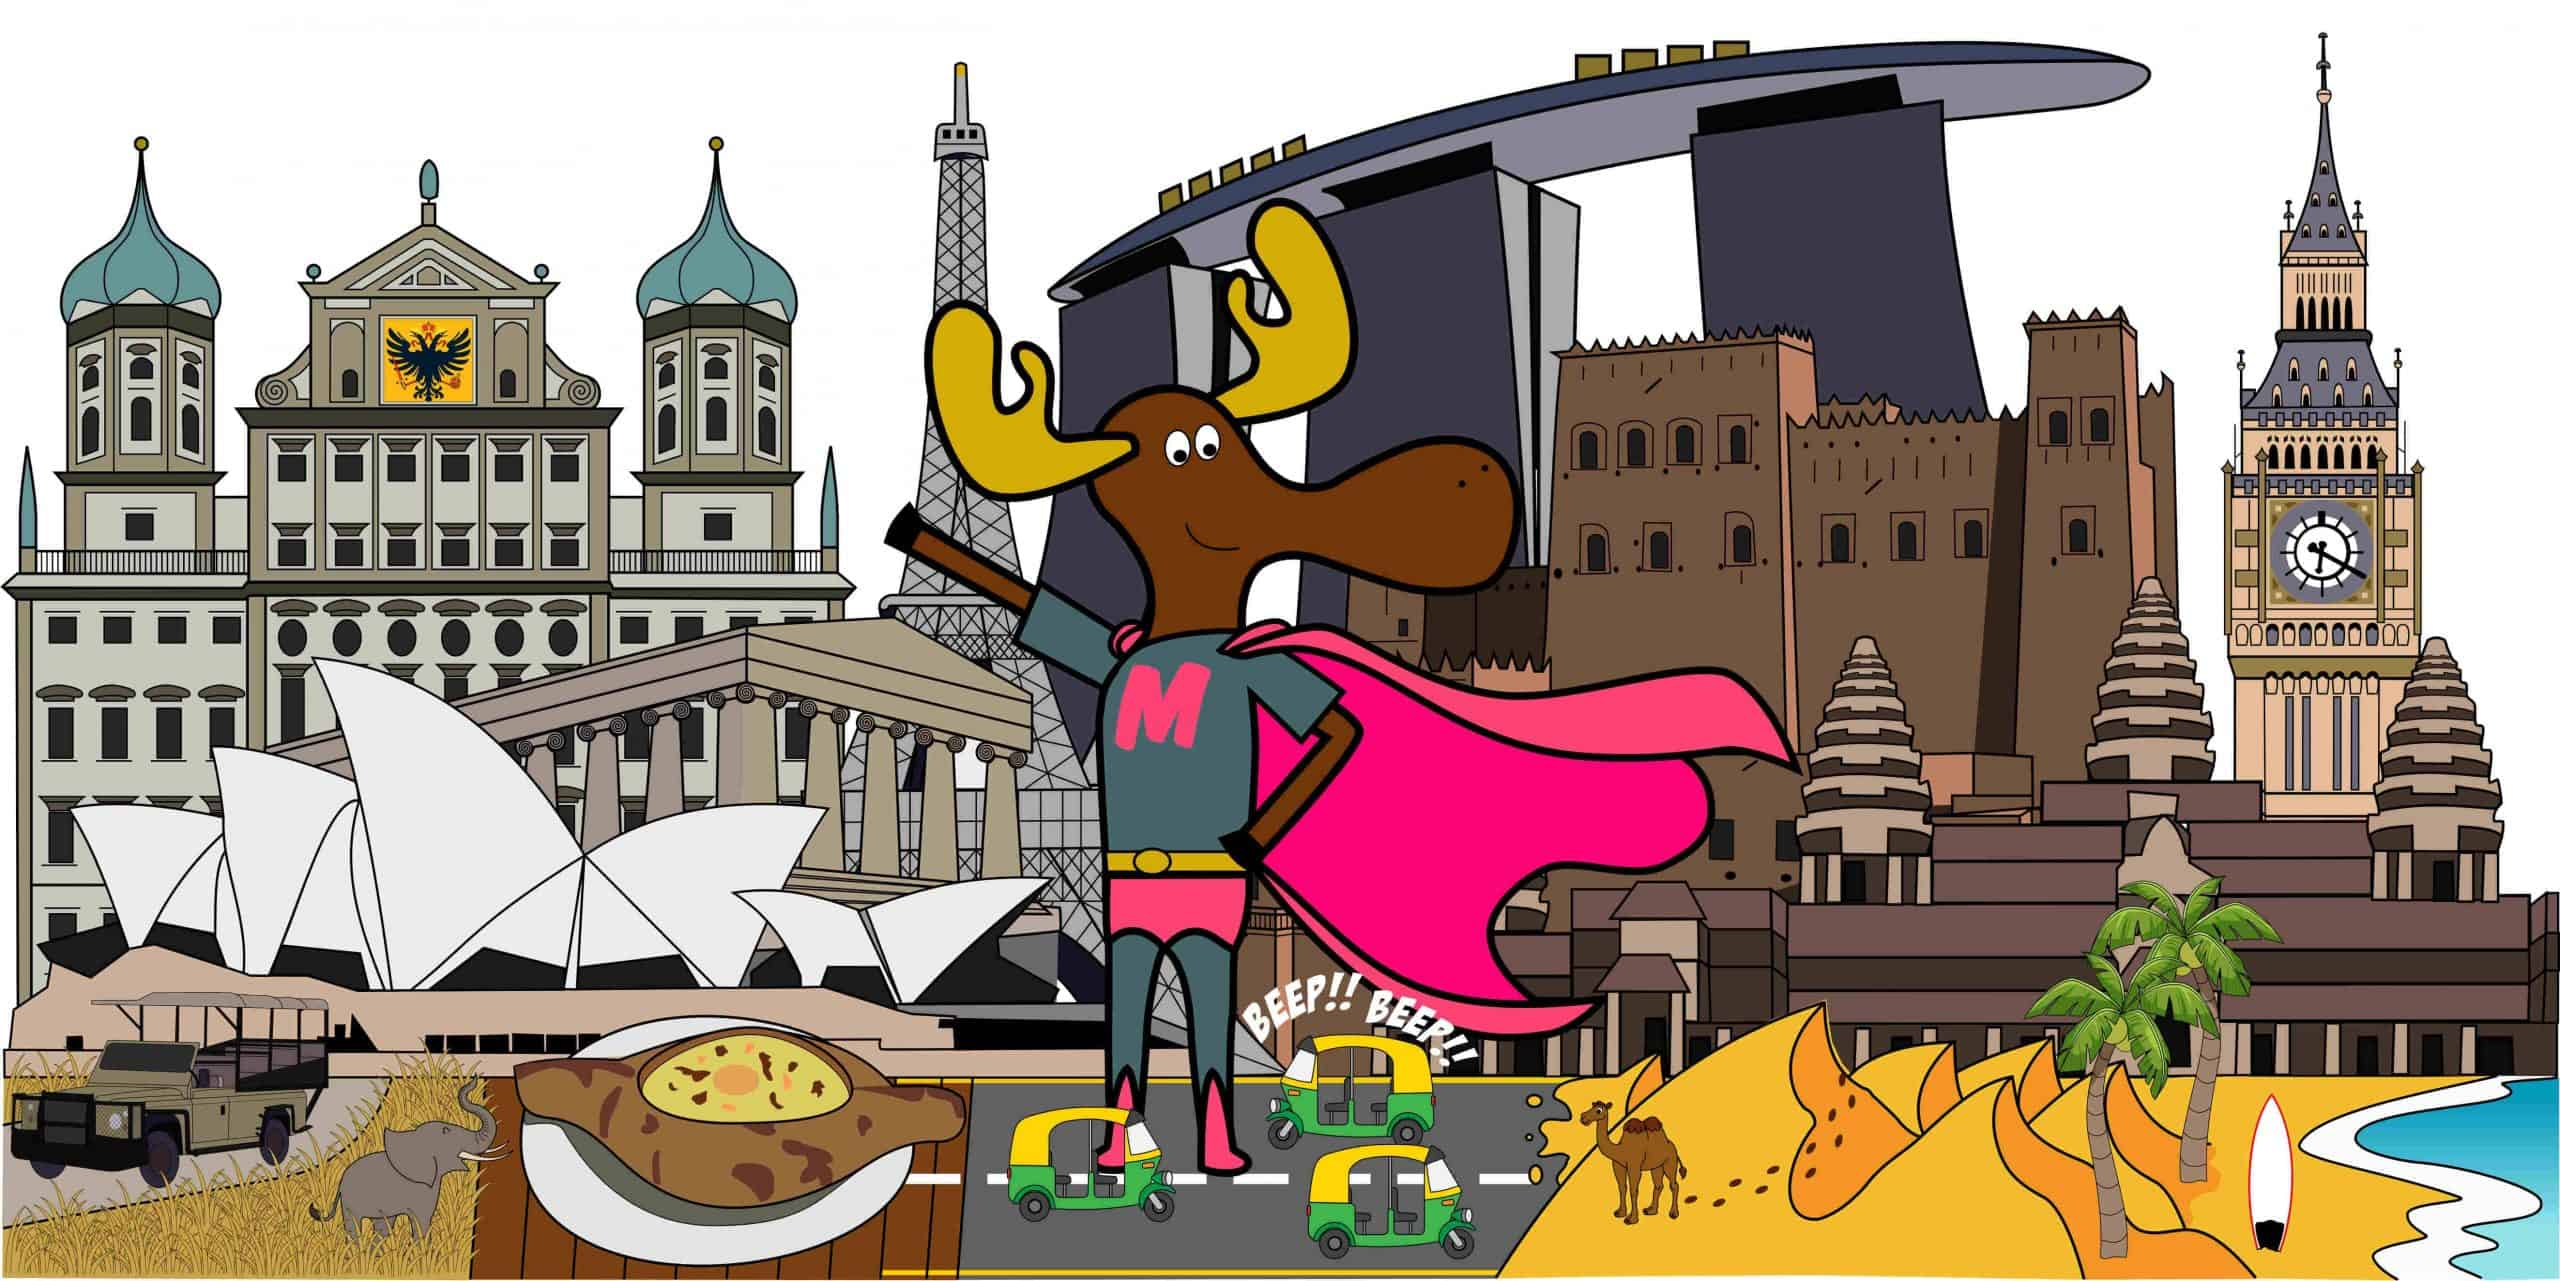 Milli the moose with famous landmarks in the background